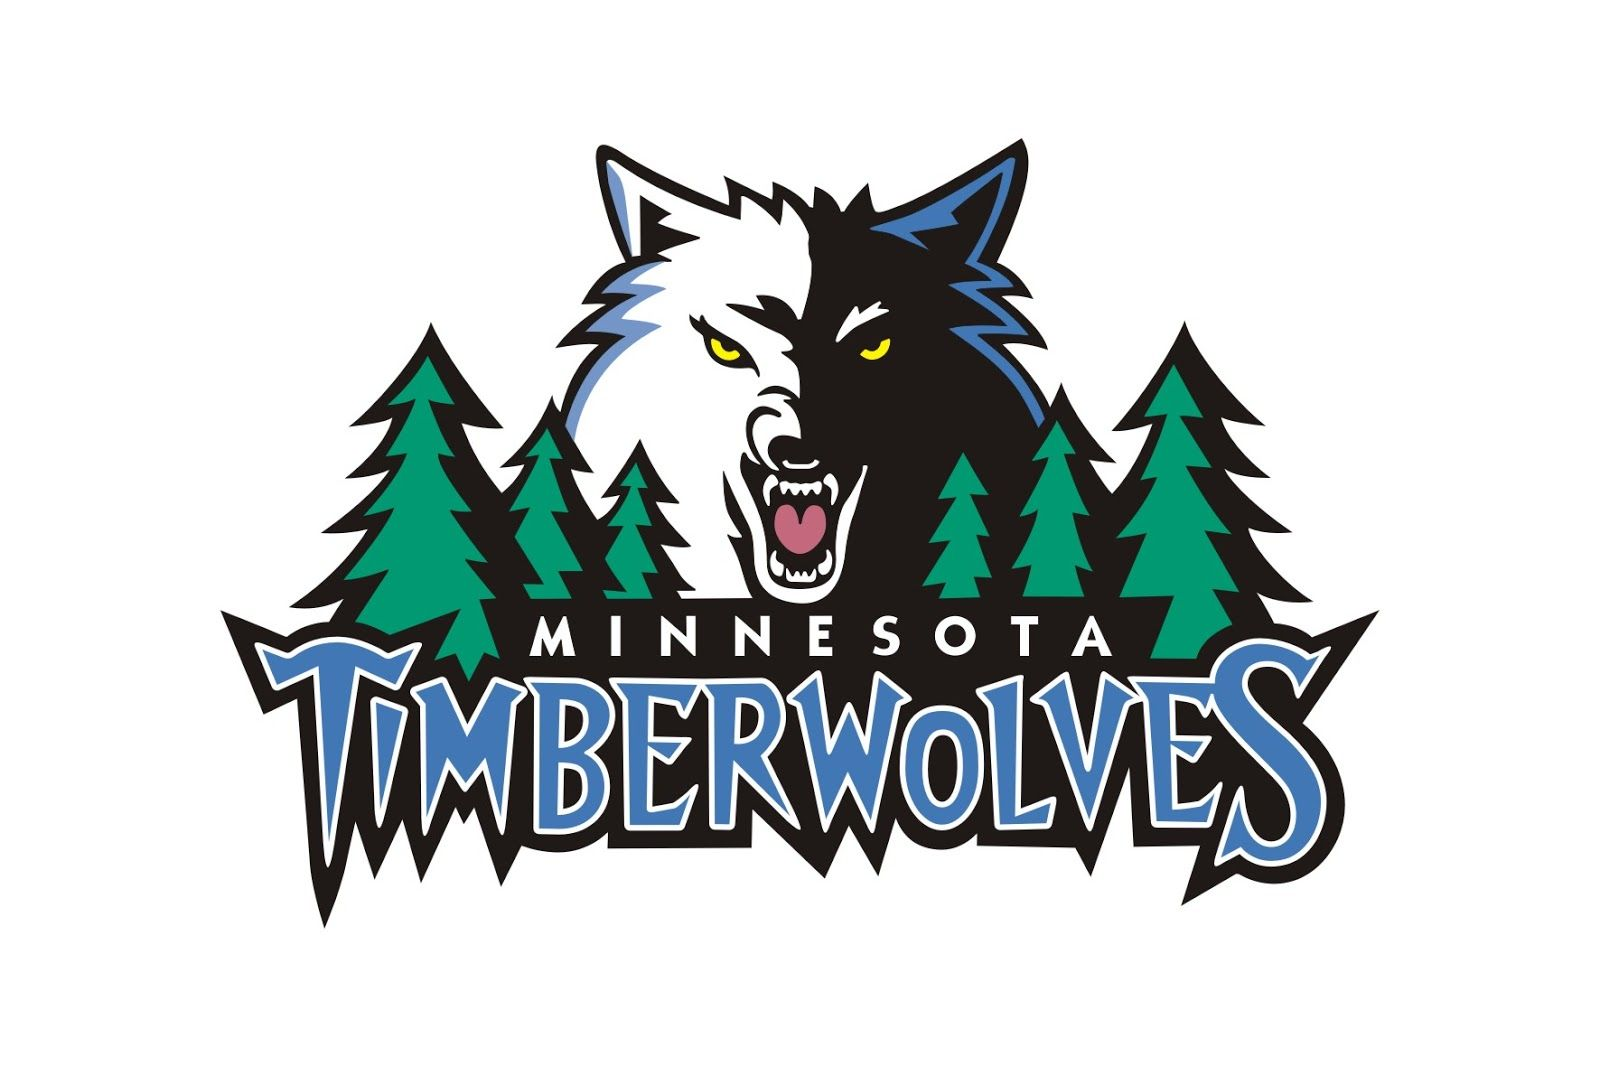 images of the MINNESOTA timberwolves football team logos